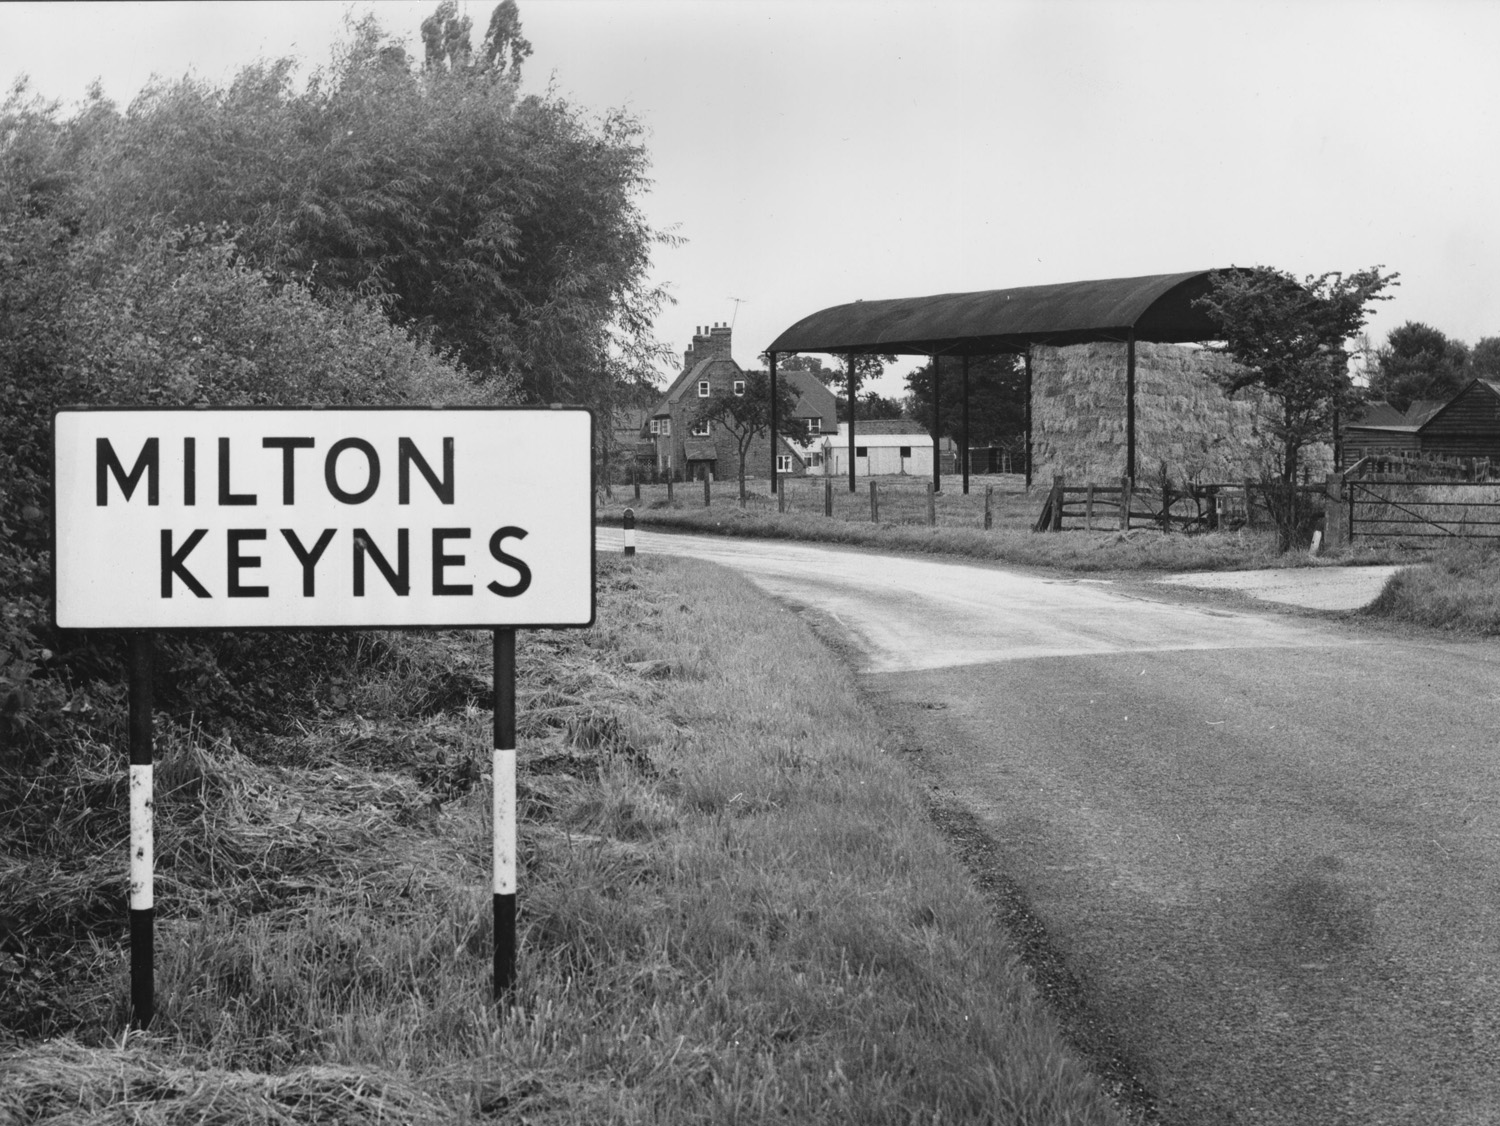 The sign to Milton Keynes